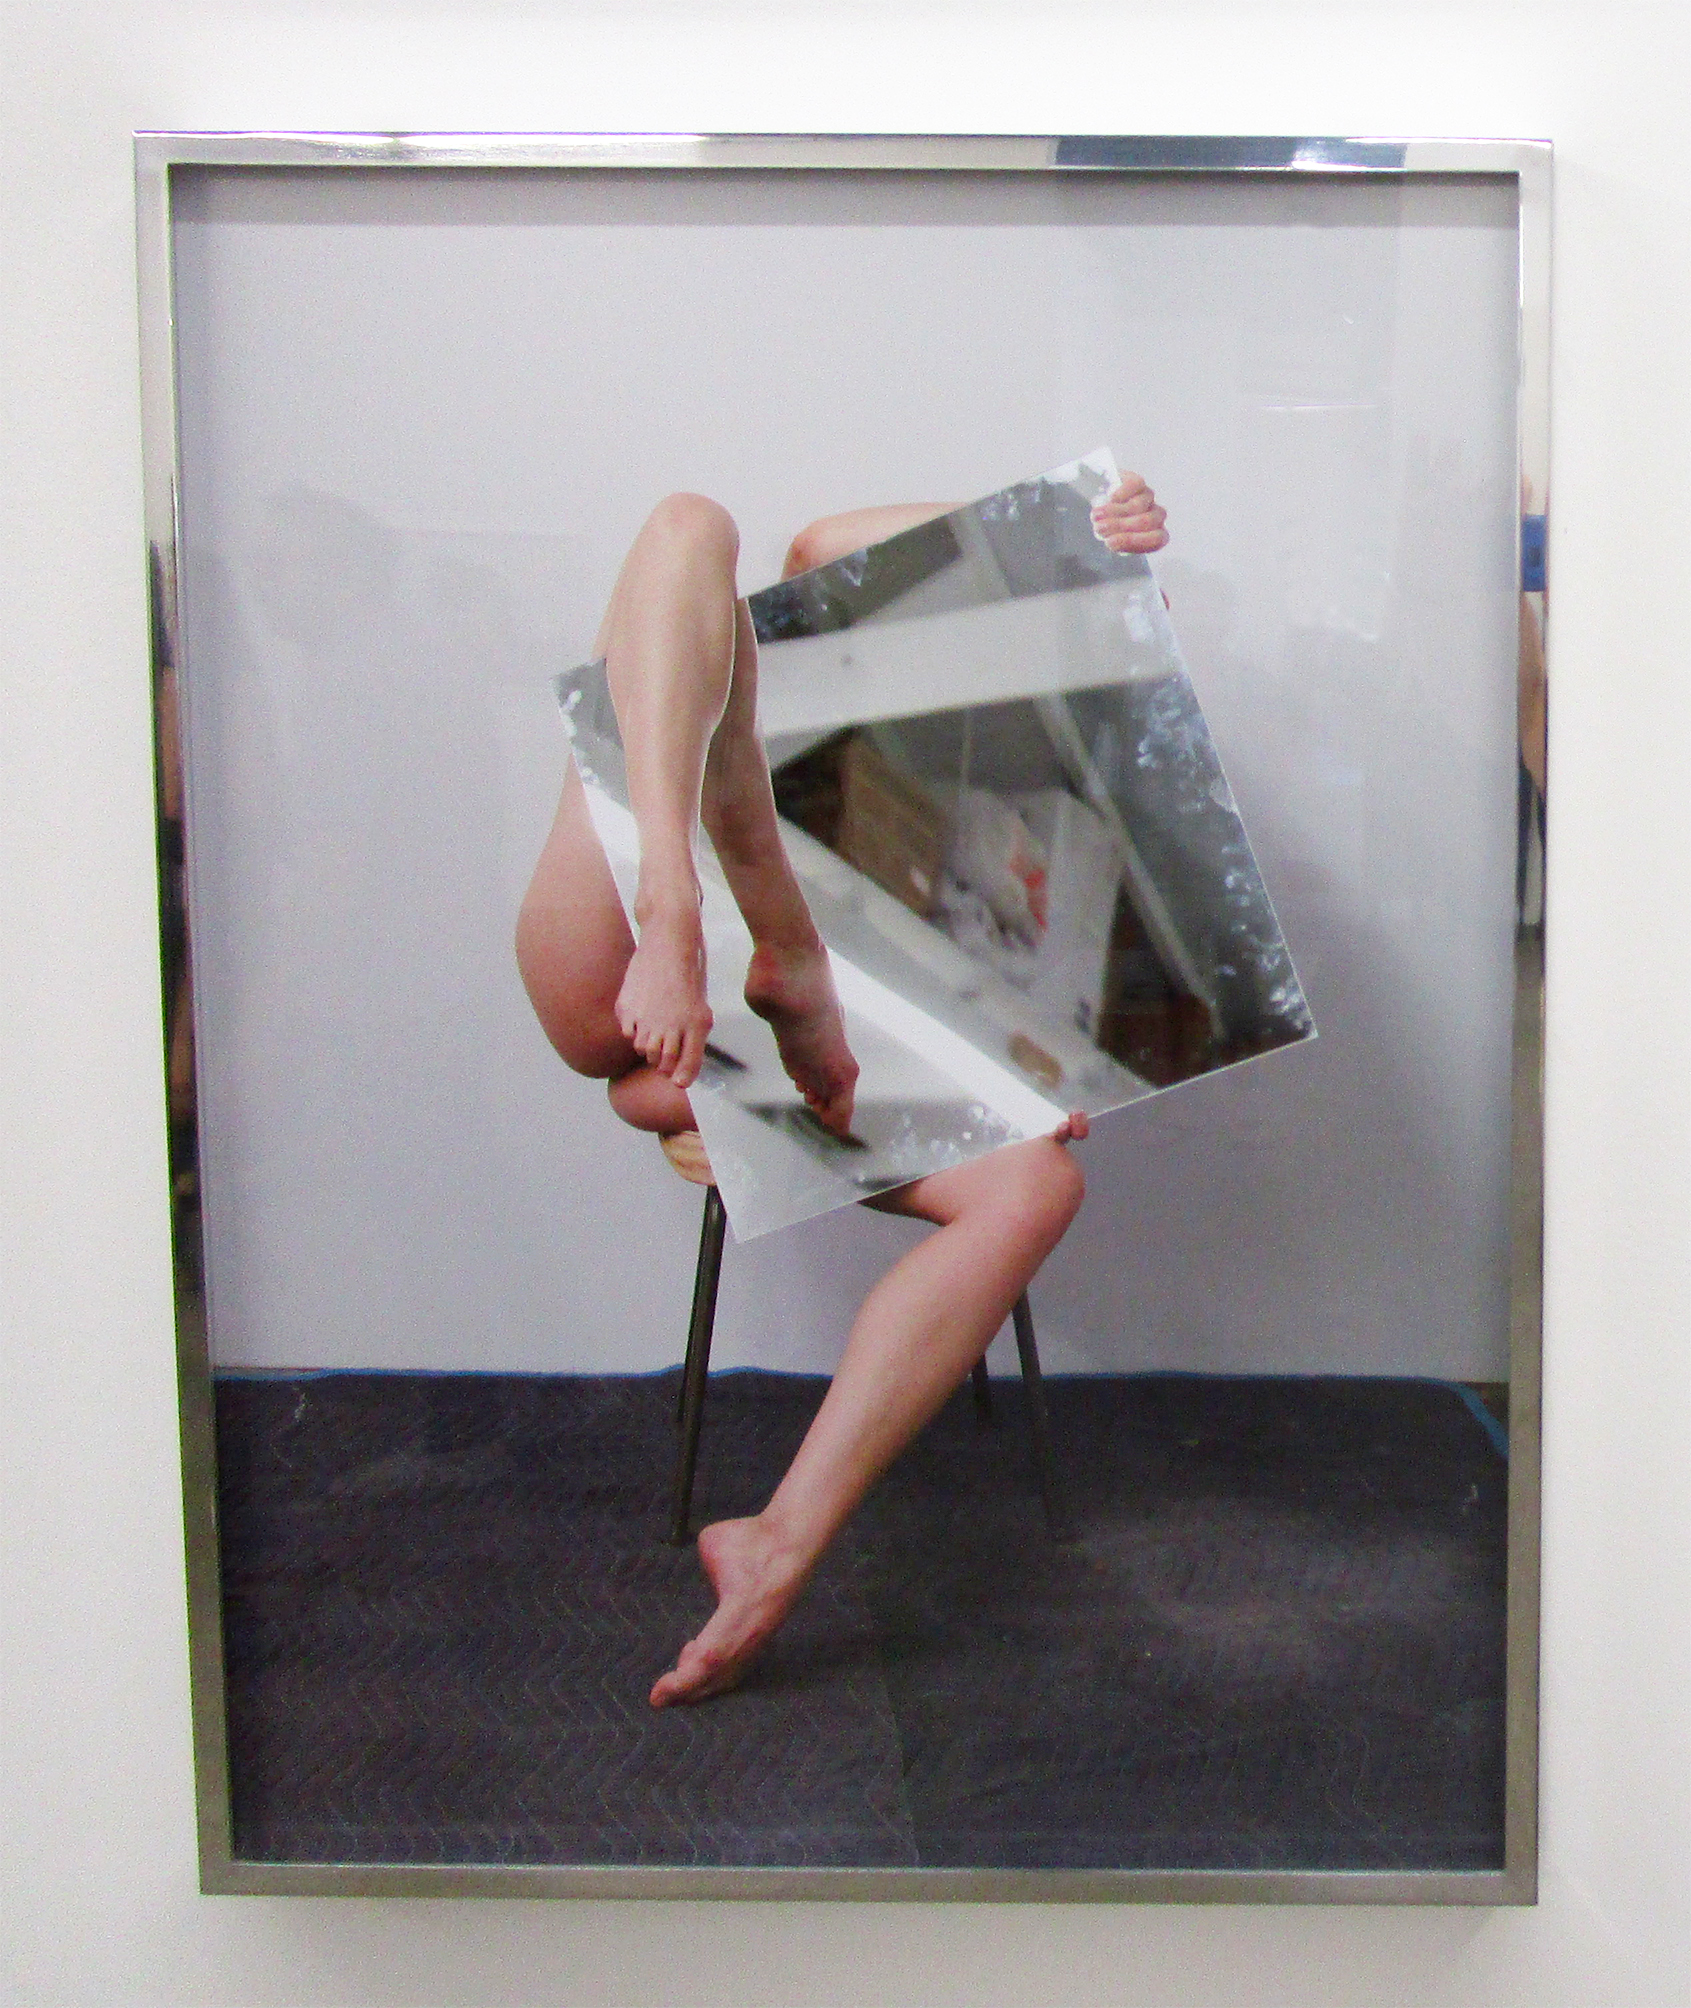 heather-rasmussen-untitled-study-in-the-studio-with-mirror-and-slippers.jpg